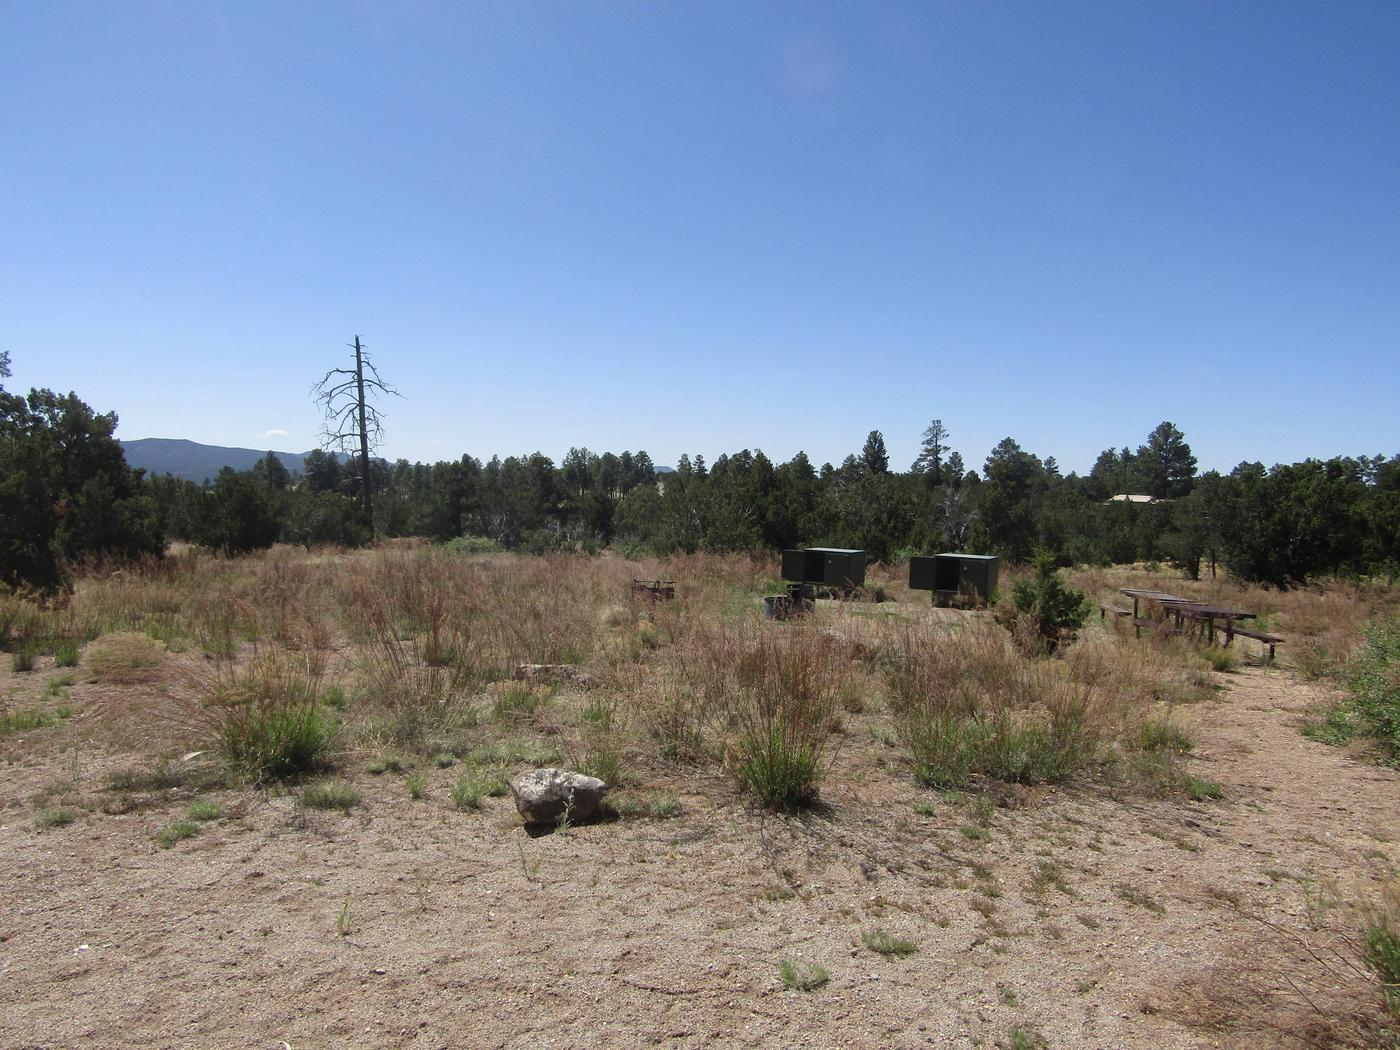 Clearing with picnic tables and food lockers.Food lockers, picnic tables, grills, campfire ring, and ample space for multiple tents are provided in group campsite 005. Restrooms with running water and drinking water are nearby.